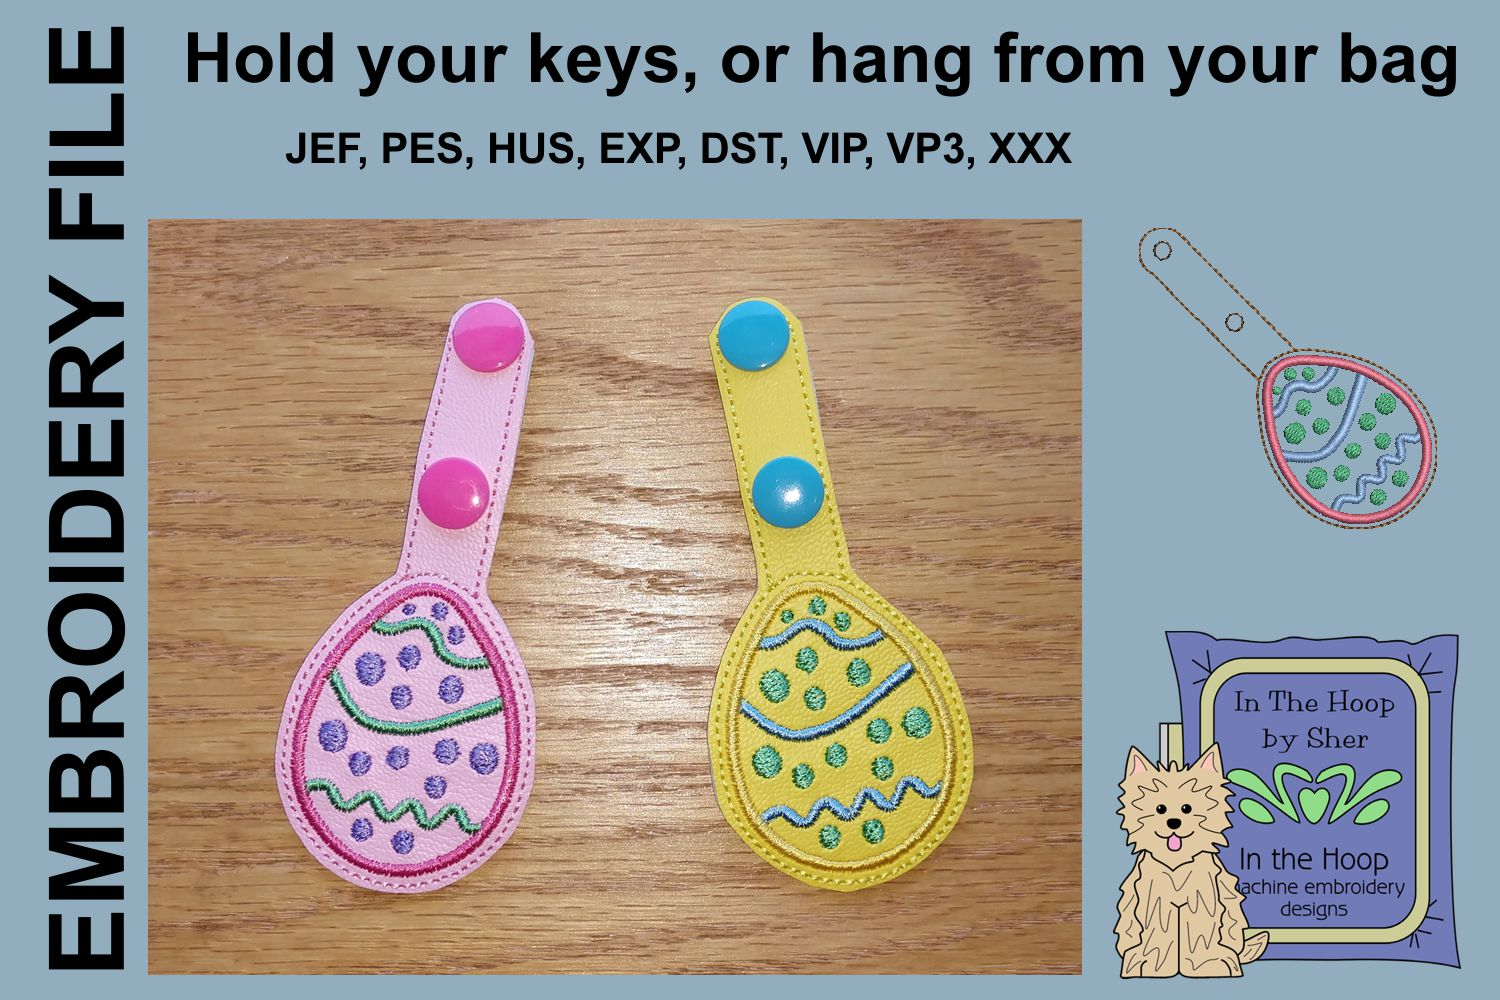 ITH Easter Egg 2 Key Fob - Embroidery Design example image 2